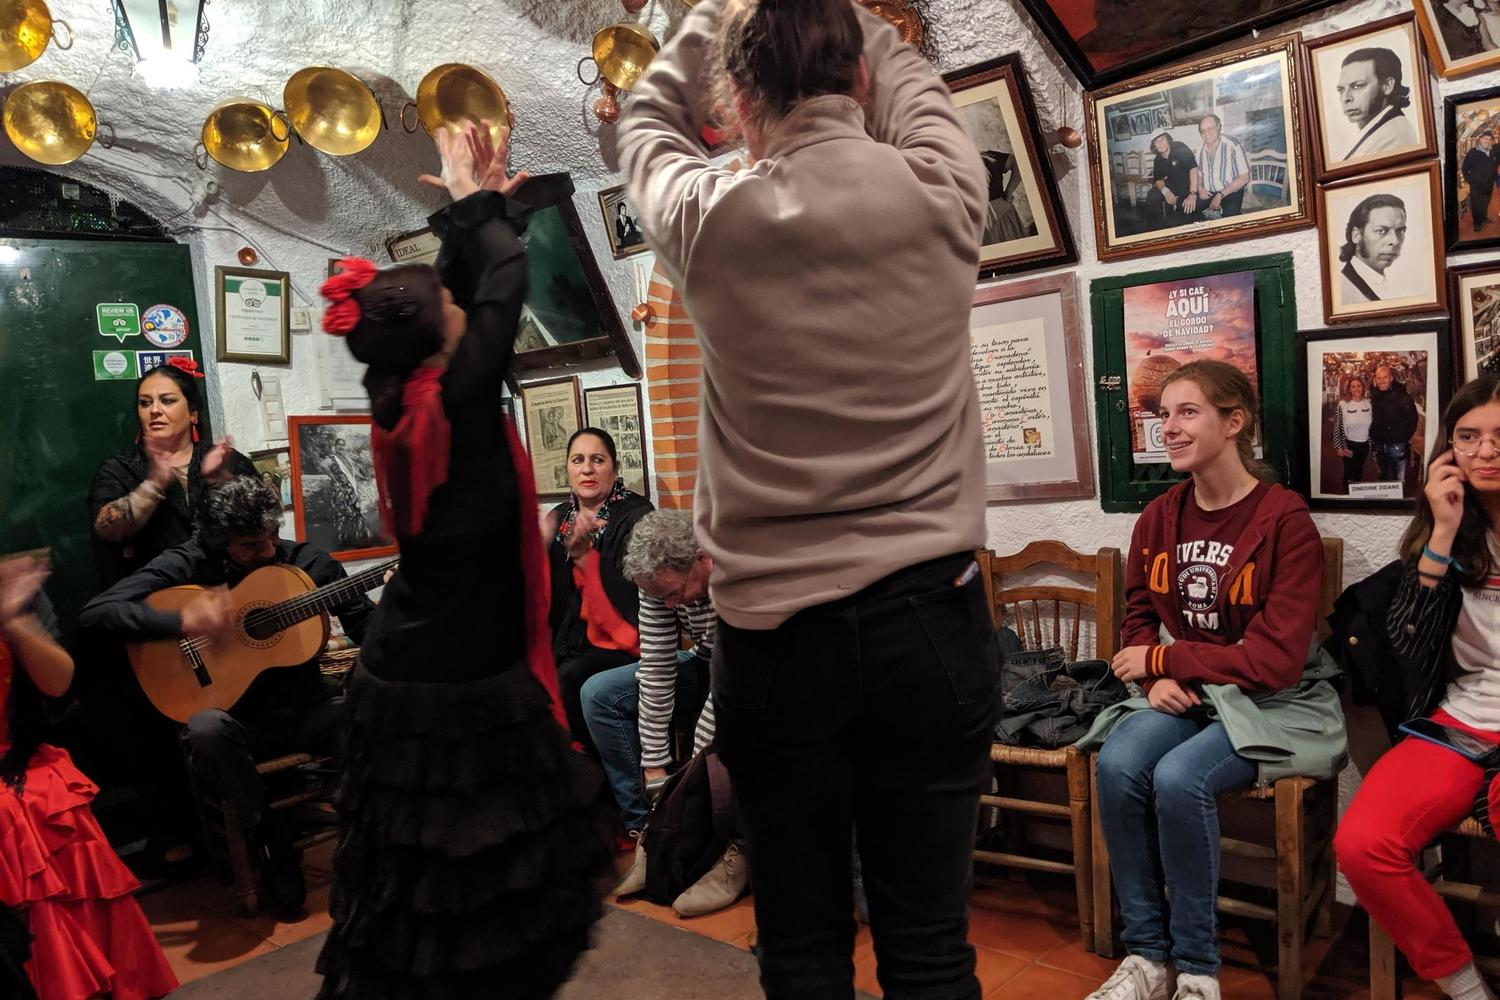 Crowd participation is rarely the hallmark of an authentic flamenco show